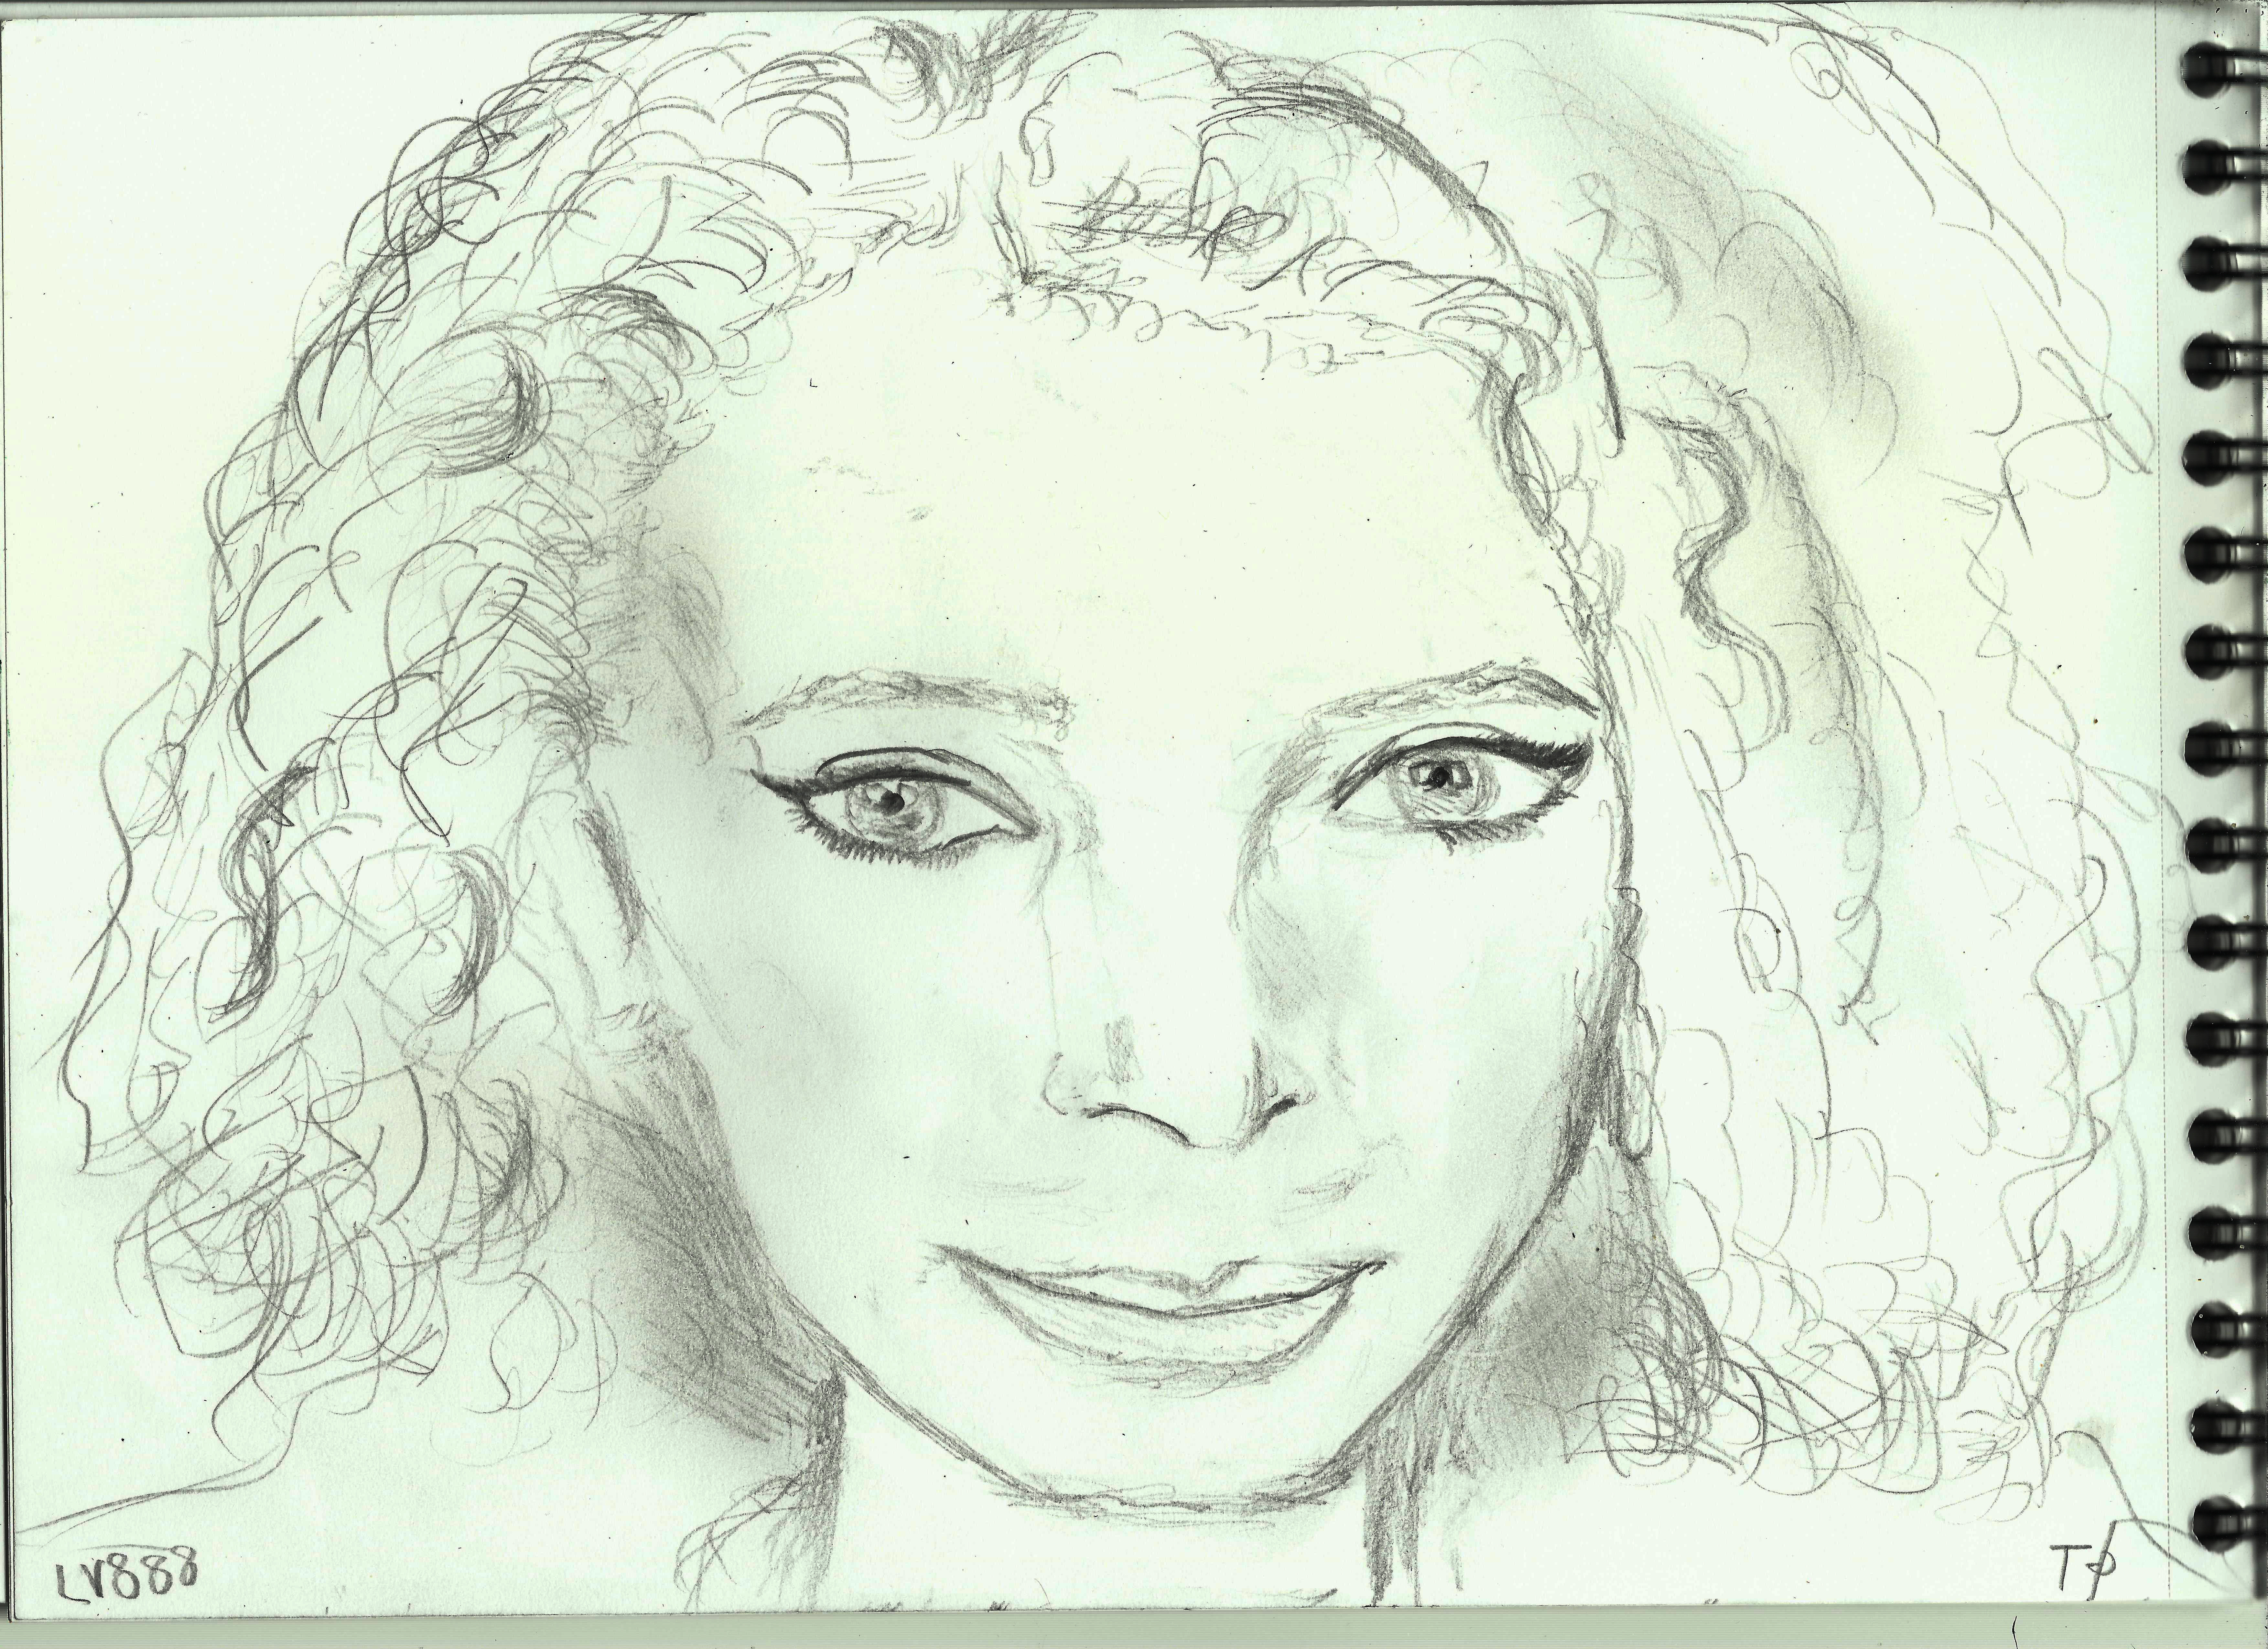 Woman Face Study N139 by lv888